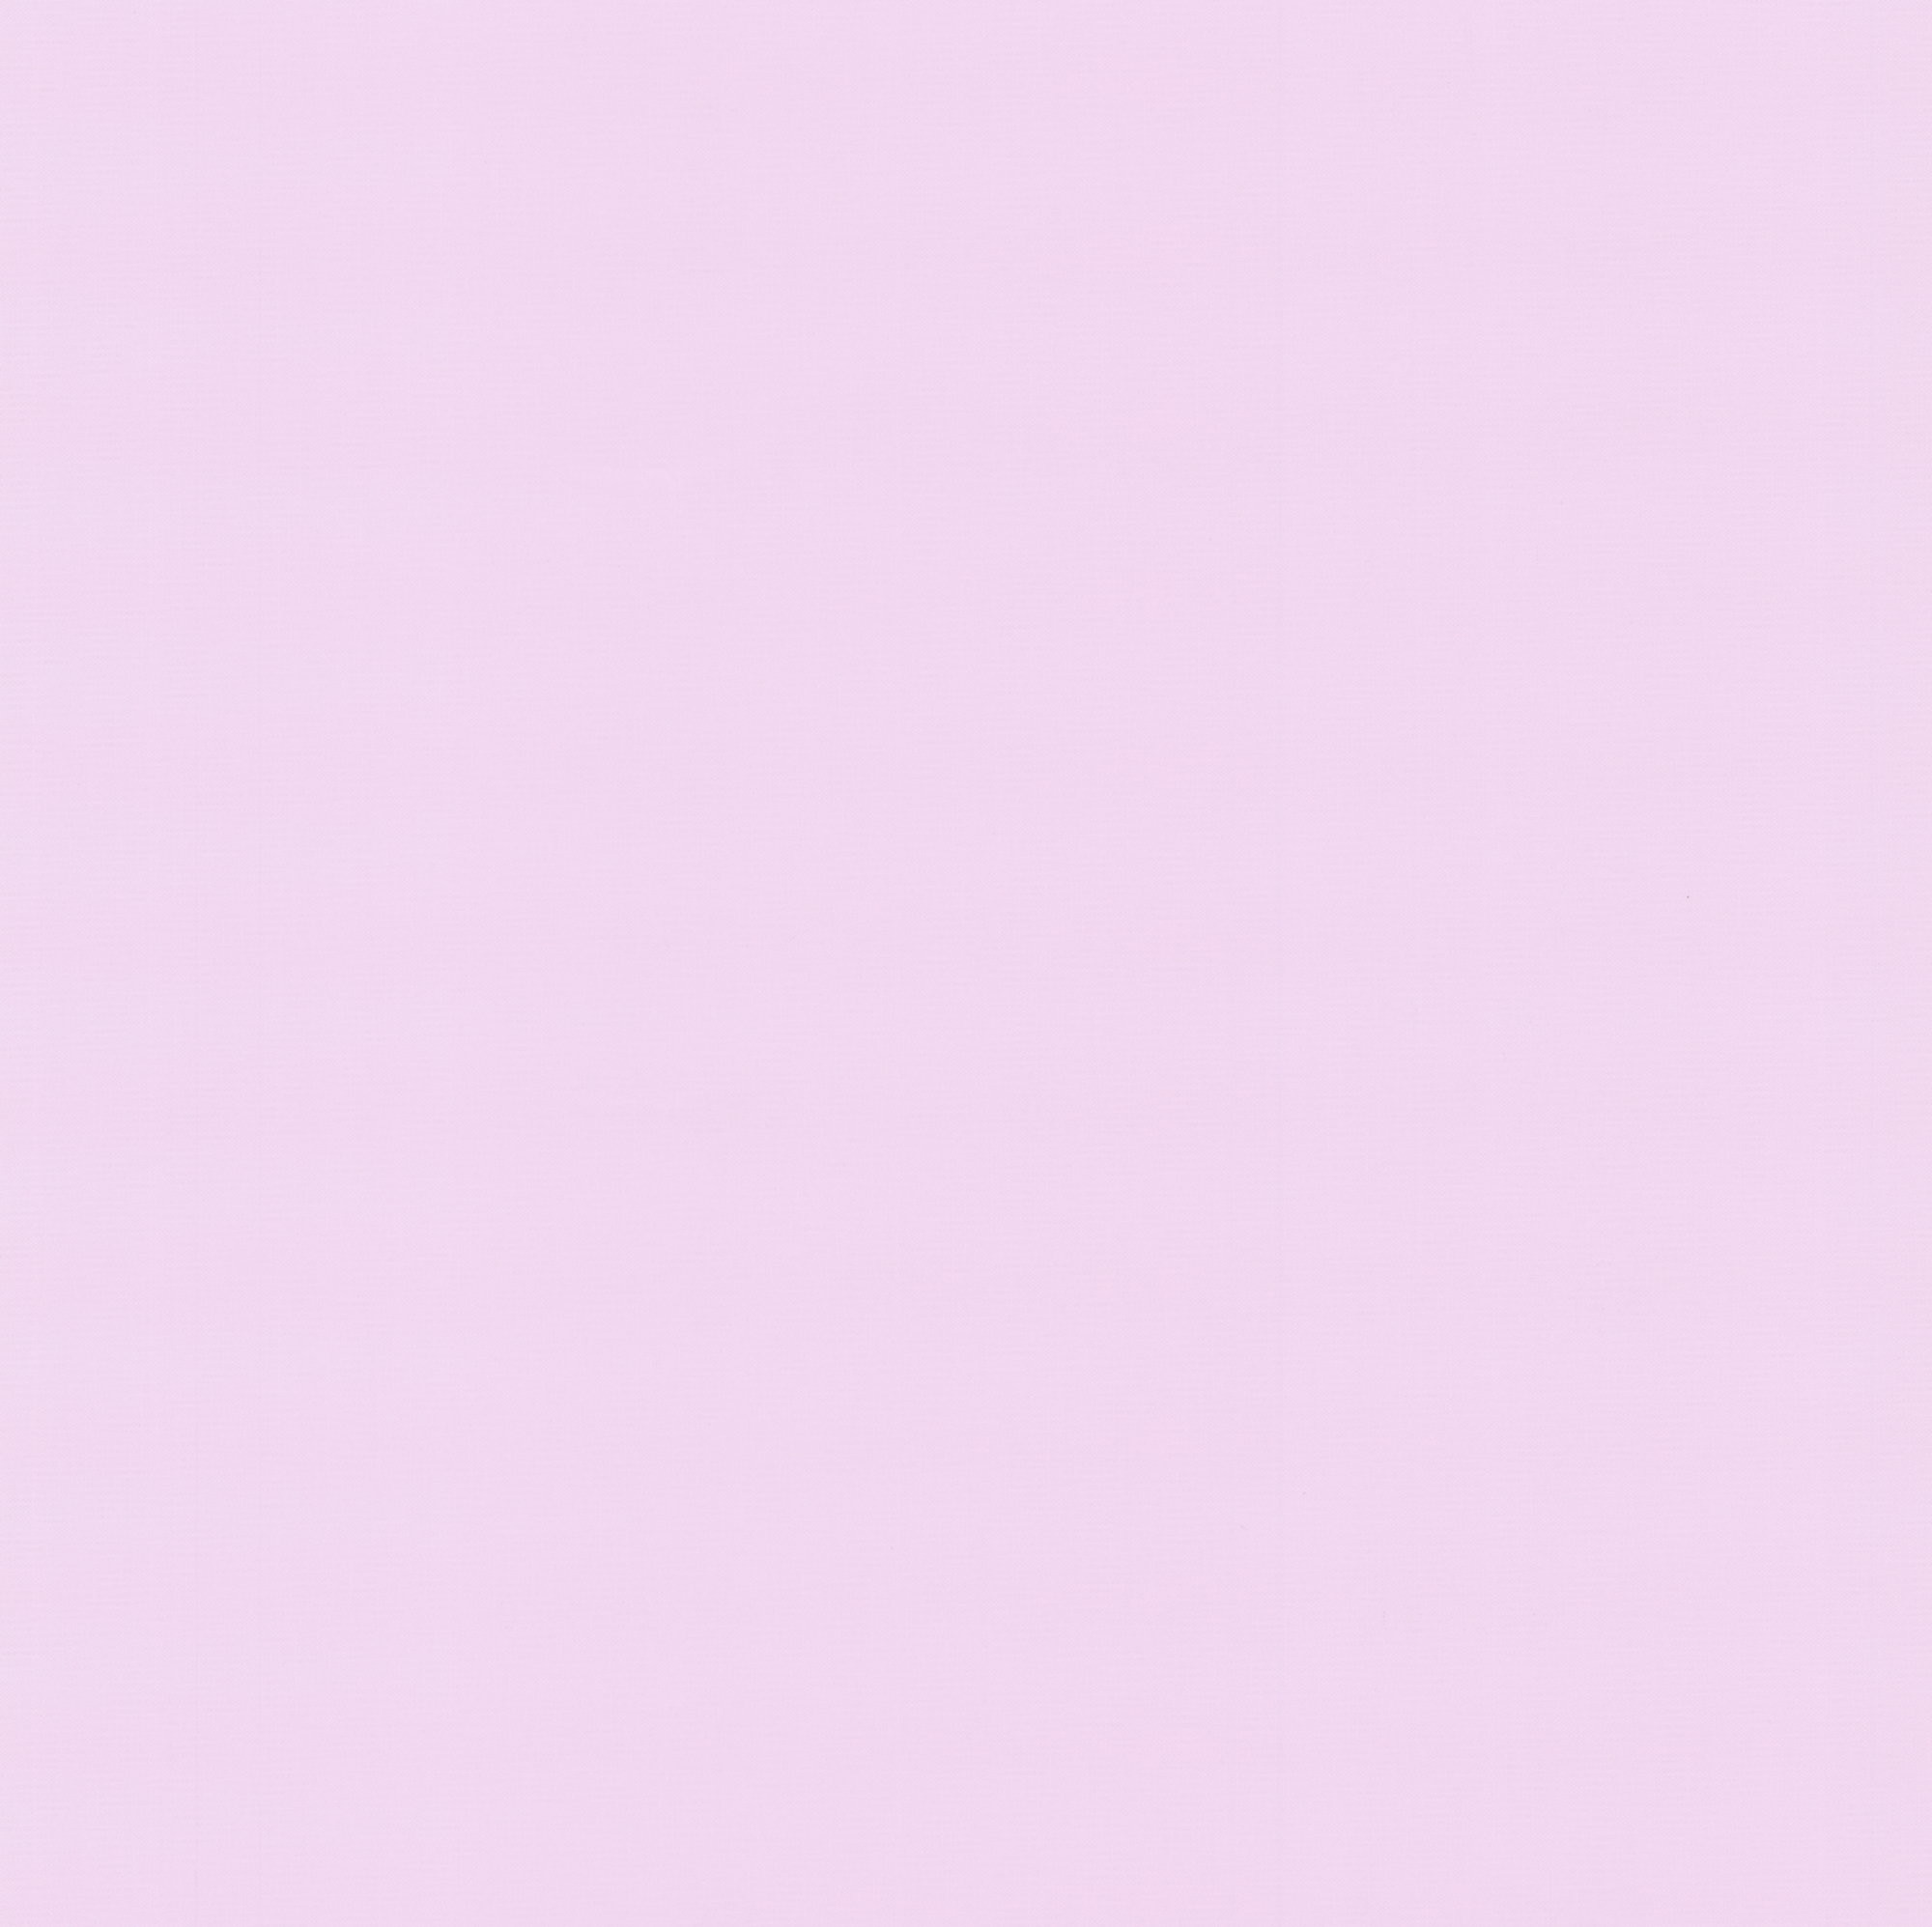 Light Pink Backgrounds ·① WallpaperTag